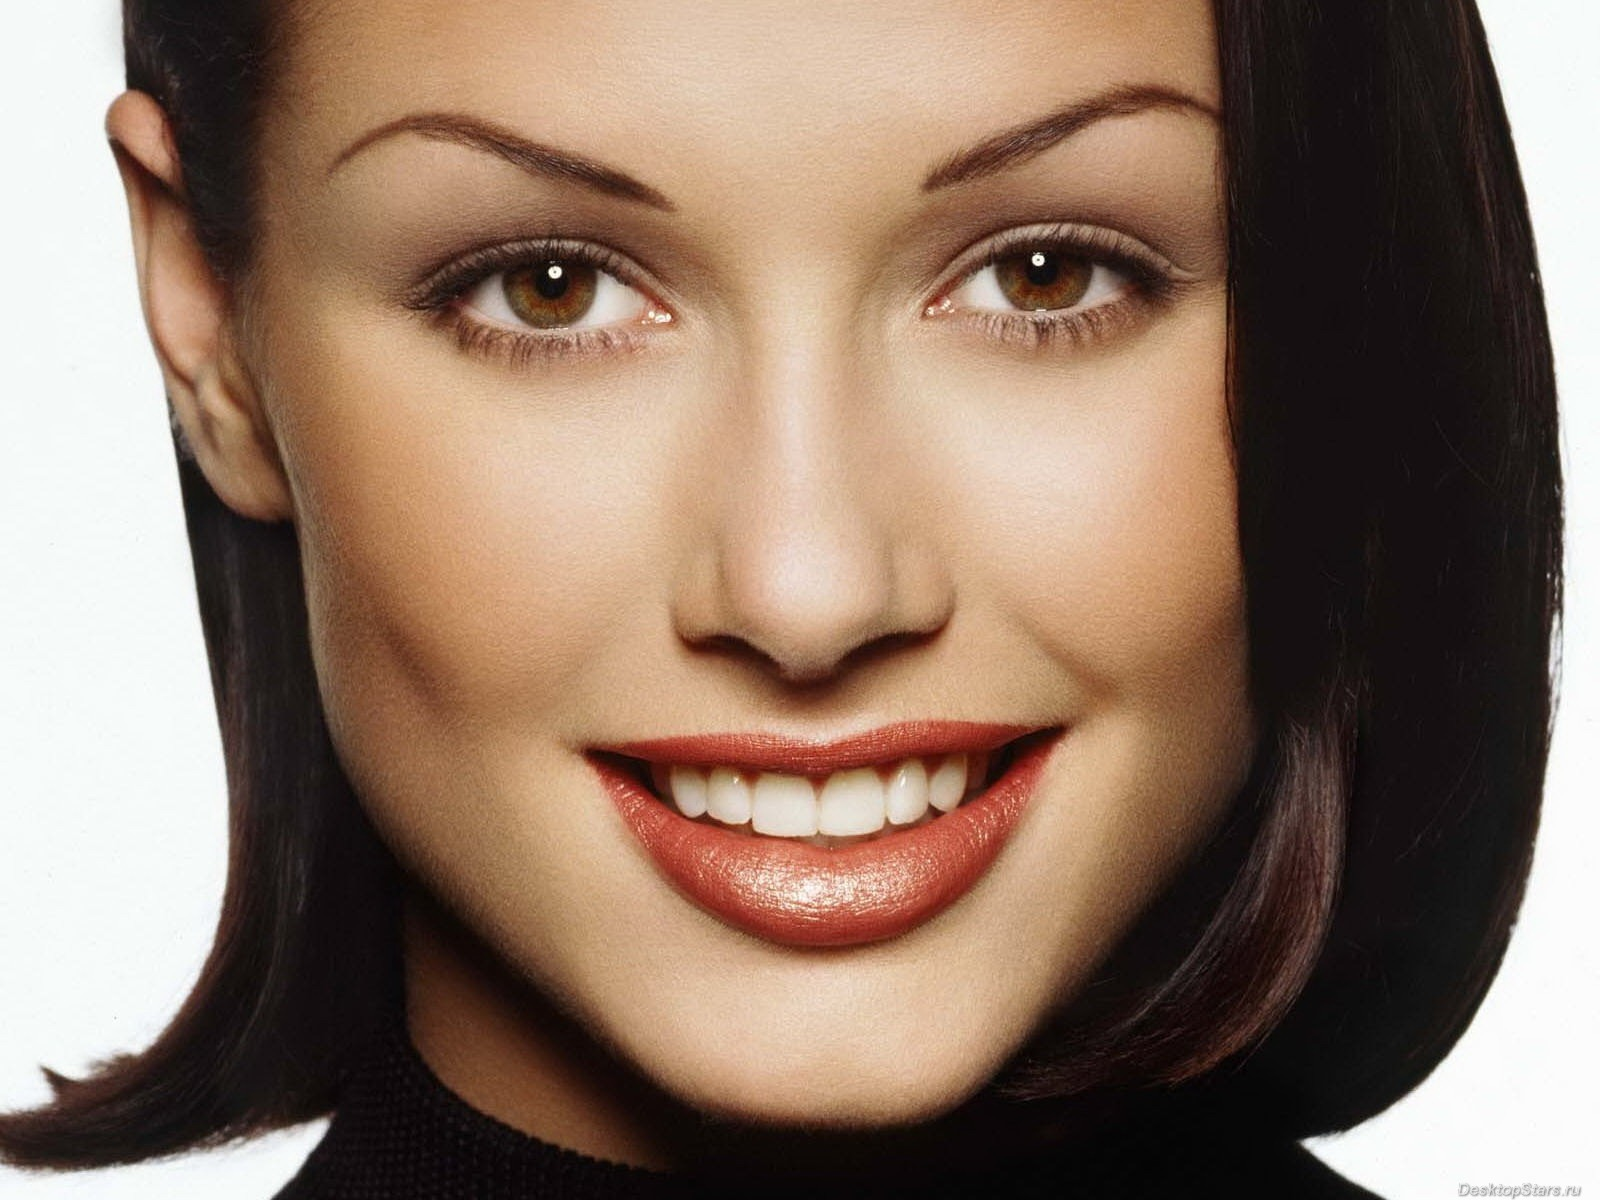 Bridget Moynahan #010 - 1600x1200 Wallpapers Pictures Photos Images